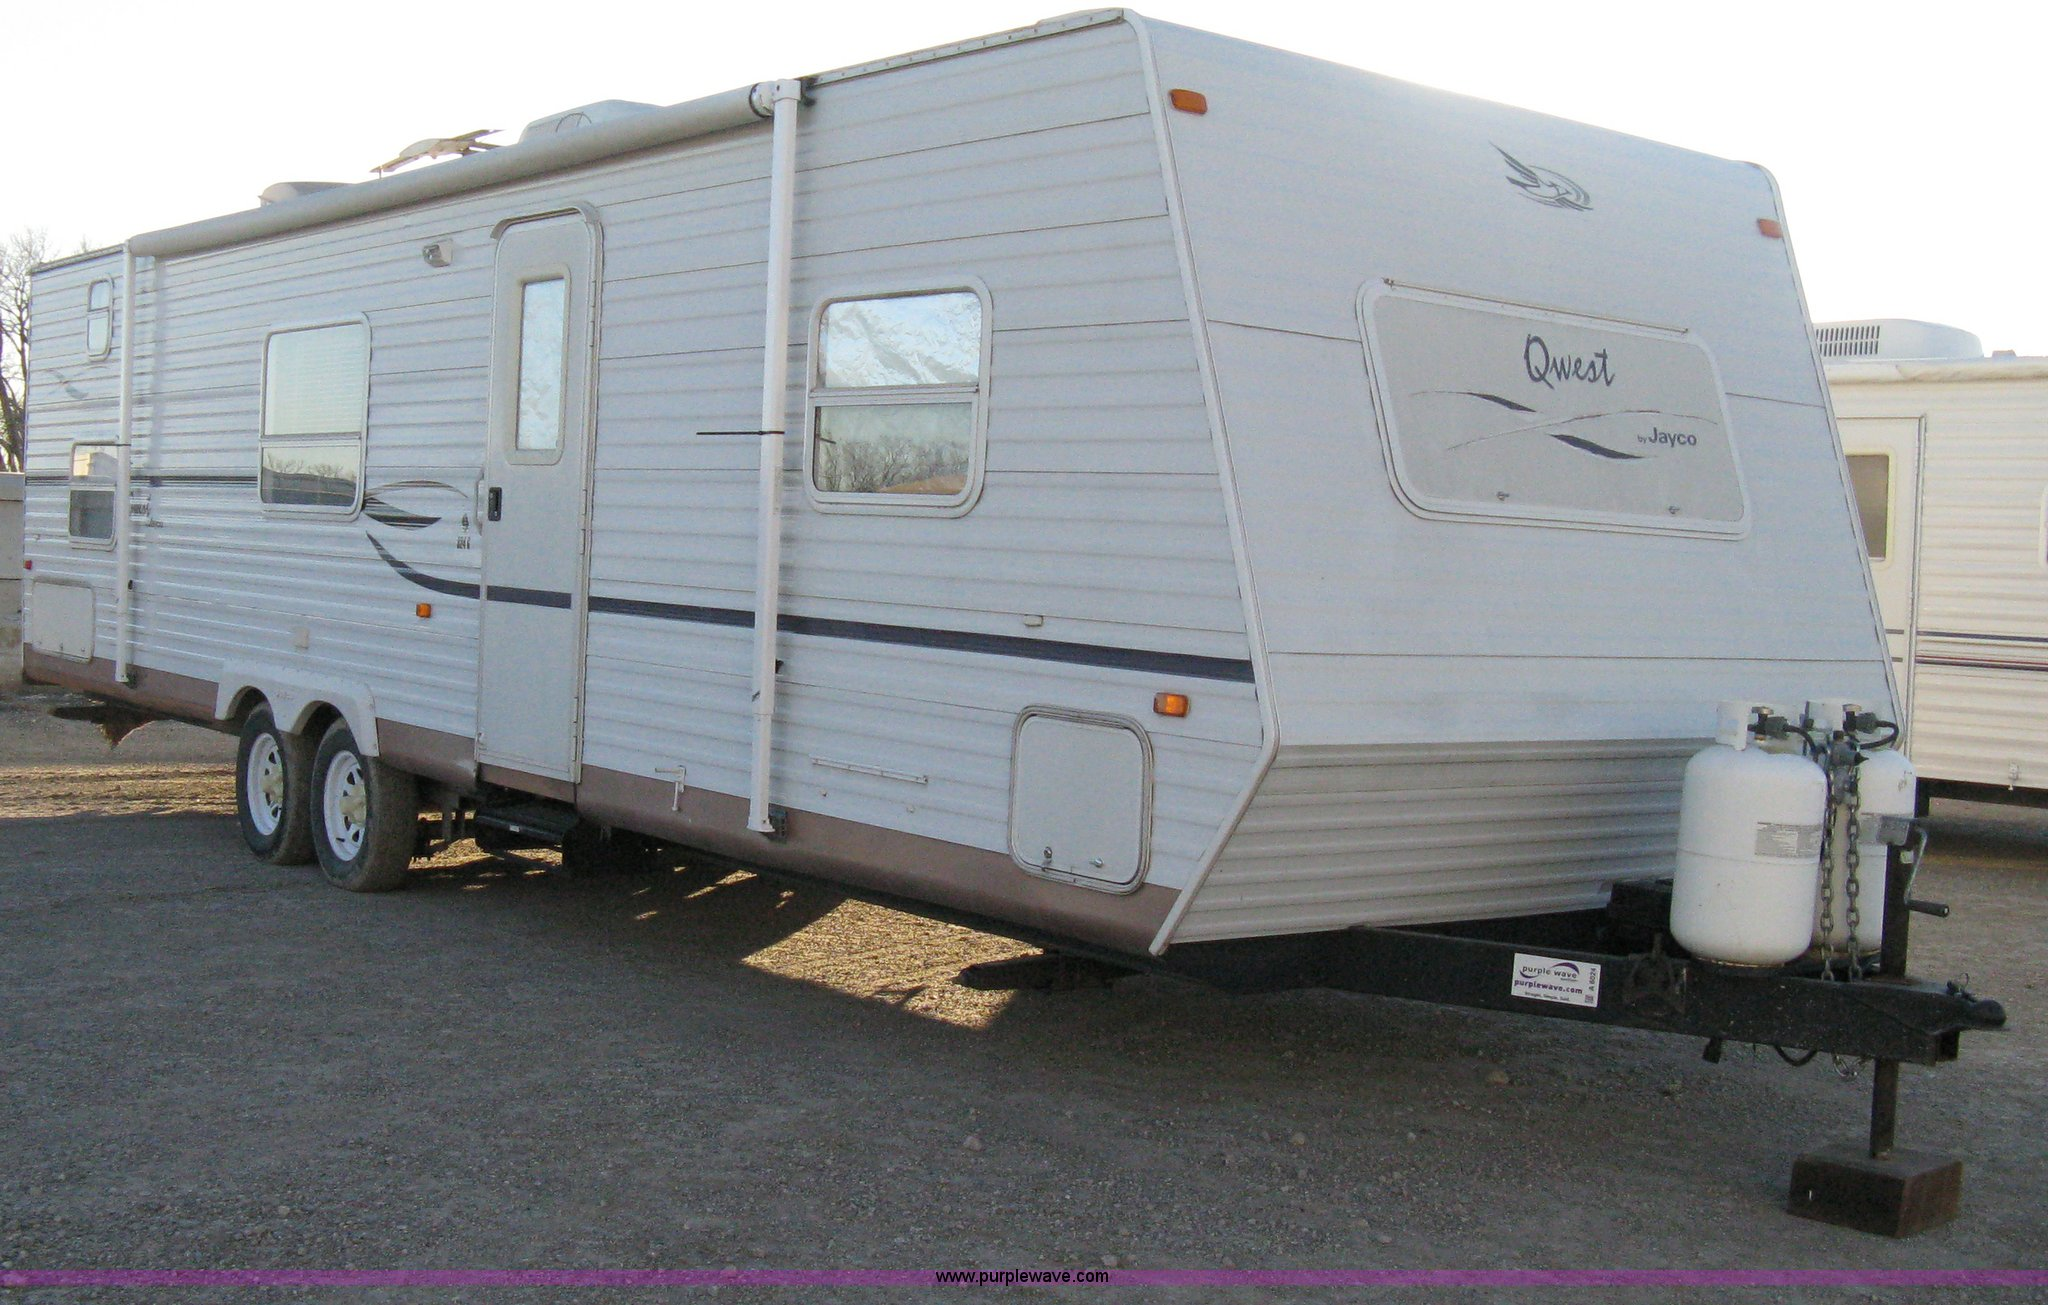 ... 2003 Jayco Qwest 324G camper trailer Full size in new window ...